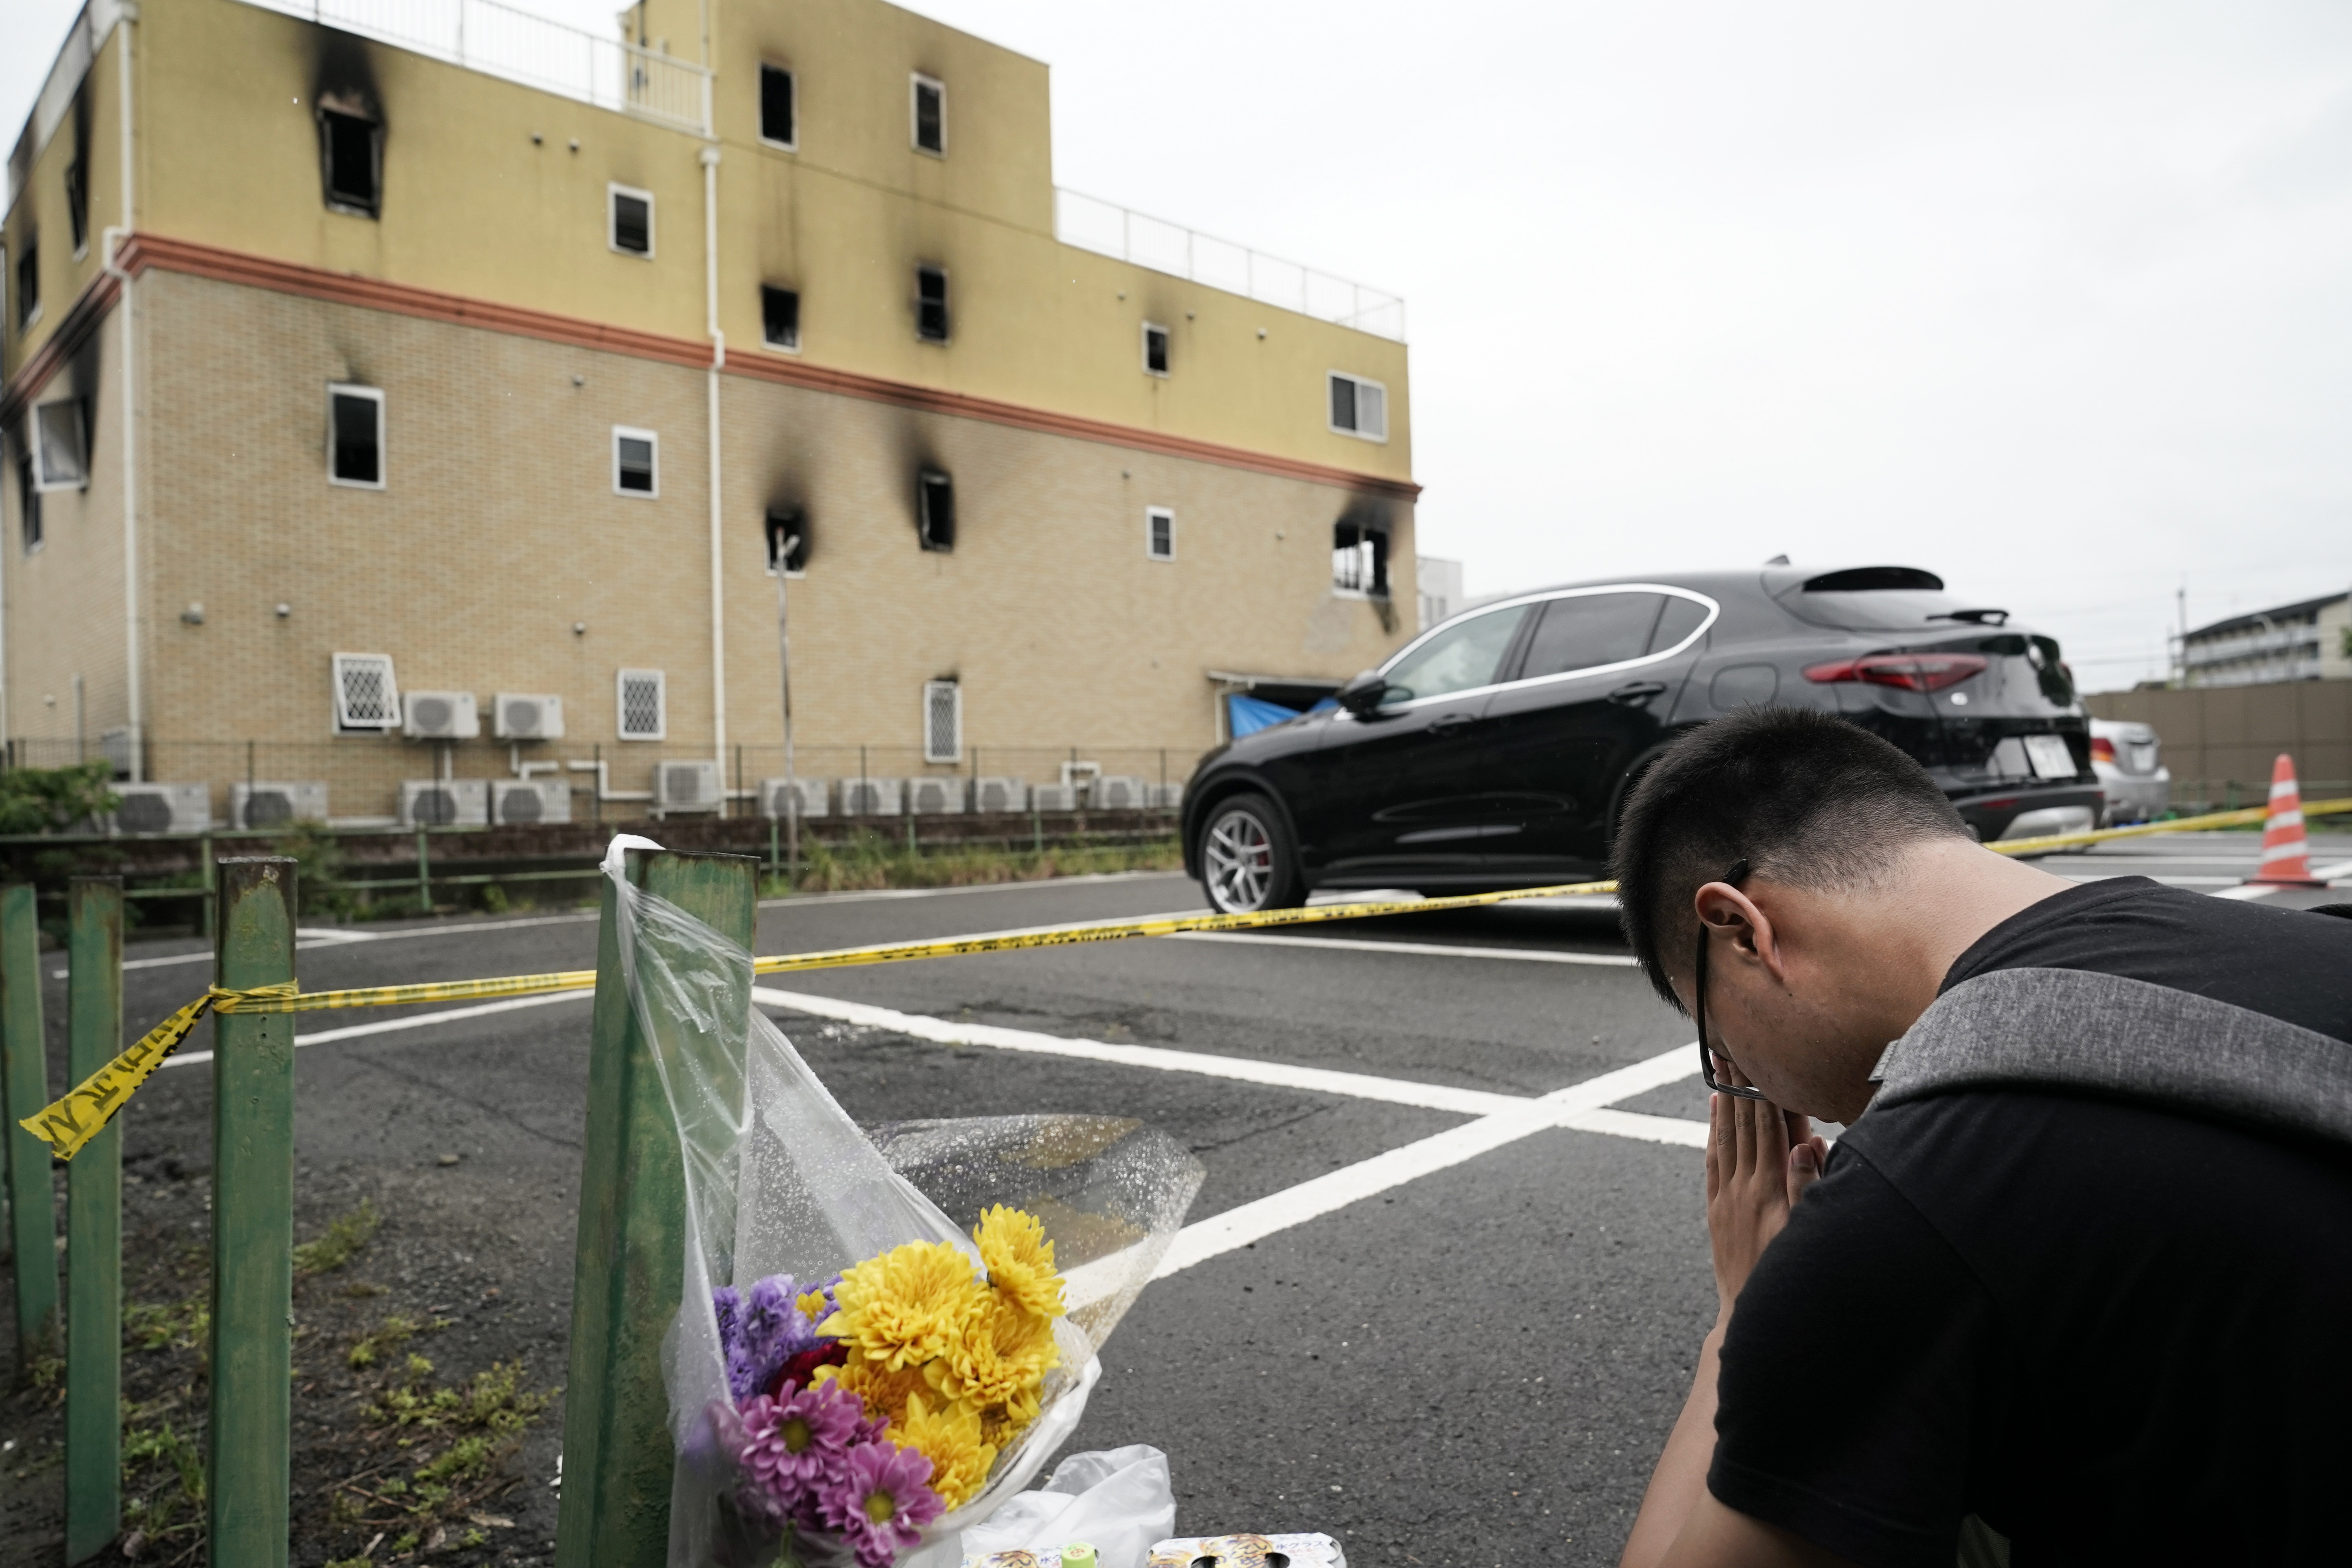 A man prays for victims after placing flowers outside the Kyoto Animation Studio building consumed in an arson attack in Kyoto, Japan on July 19, 2019.